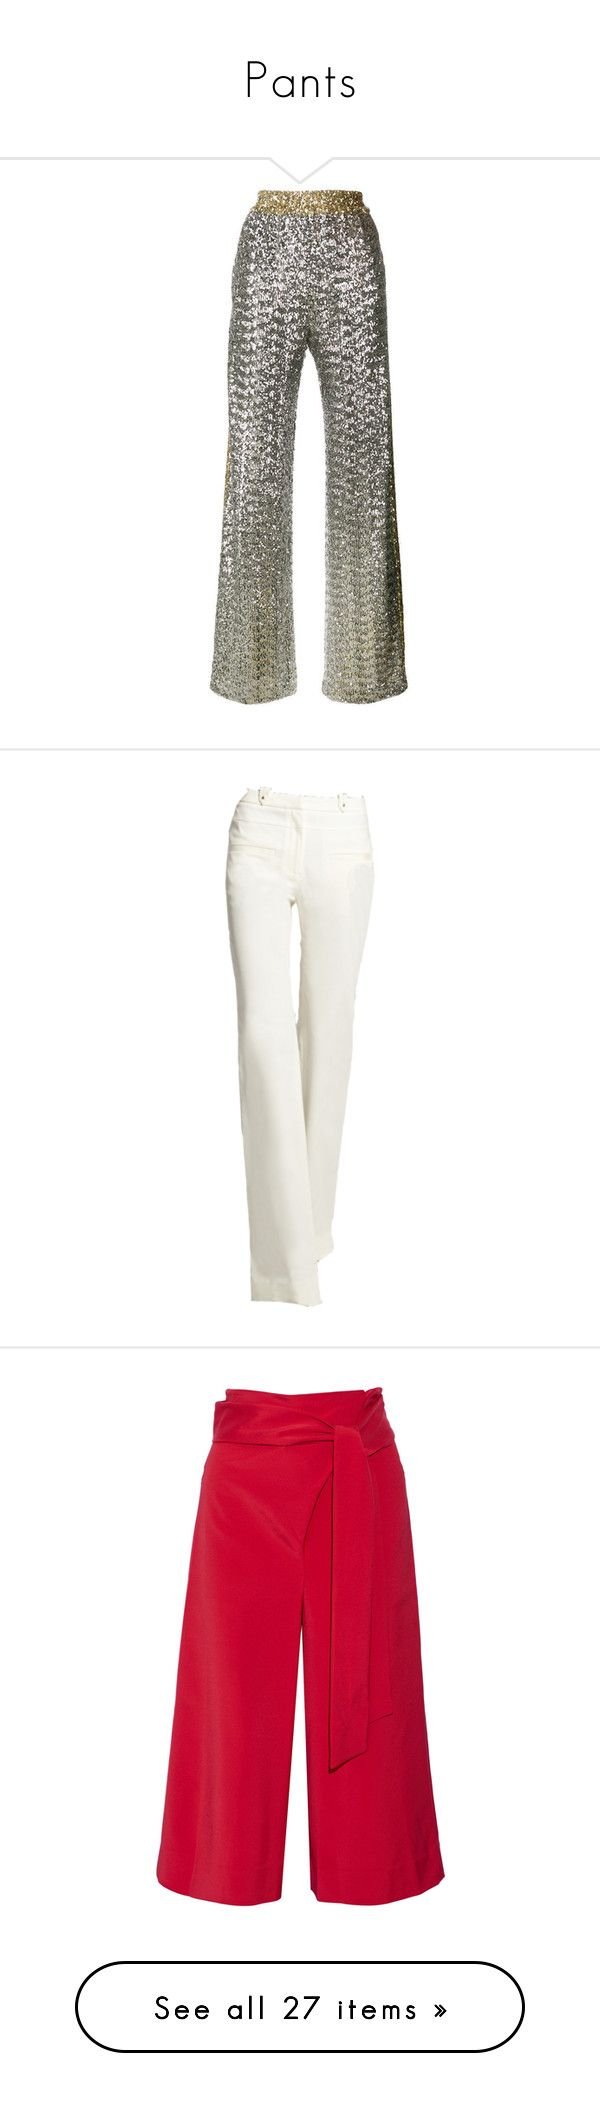 """Pants"" by onesweetthing ❤ liked on Polyvore featuring pants, metallic, white sequin pants, faith connexion, sequin pants, sequin trousers, metallic trousers, bottoms, edit and capris"